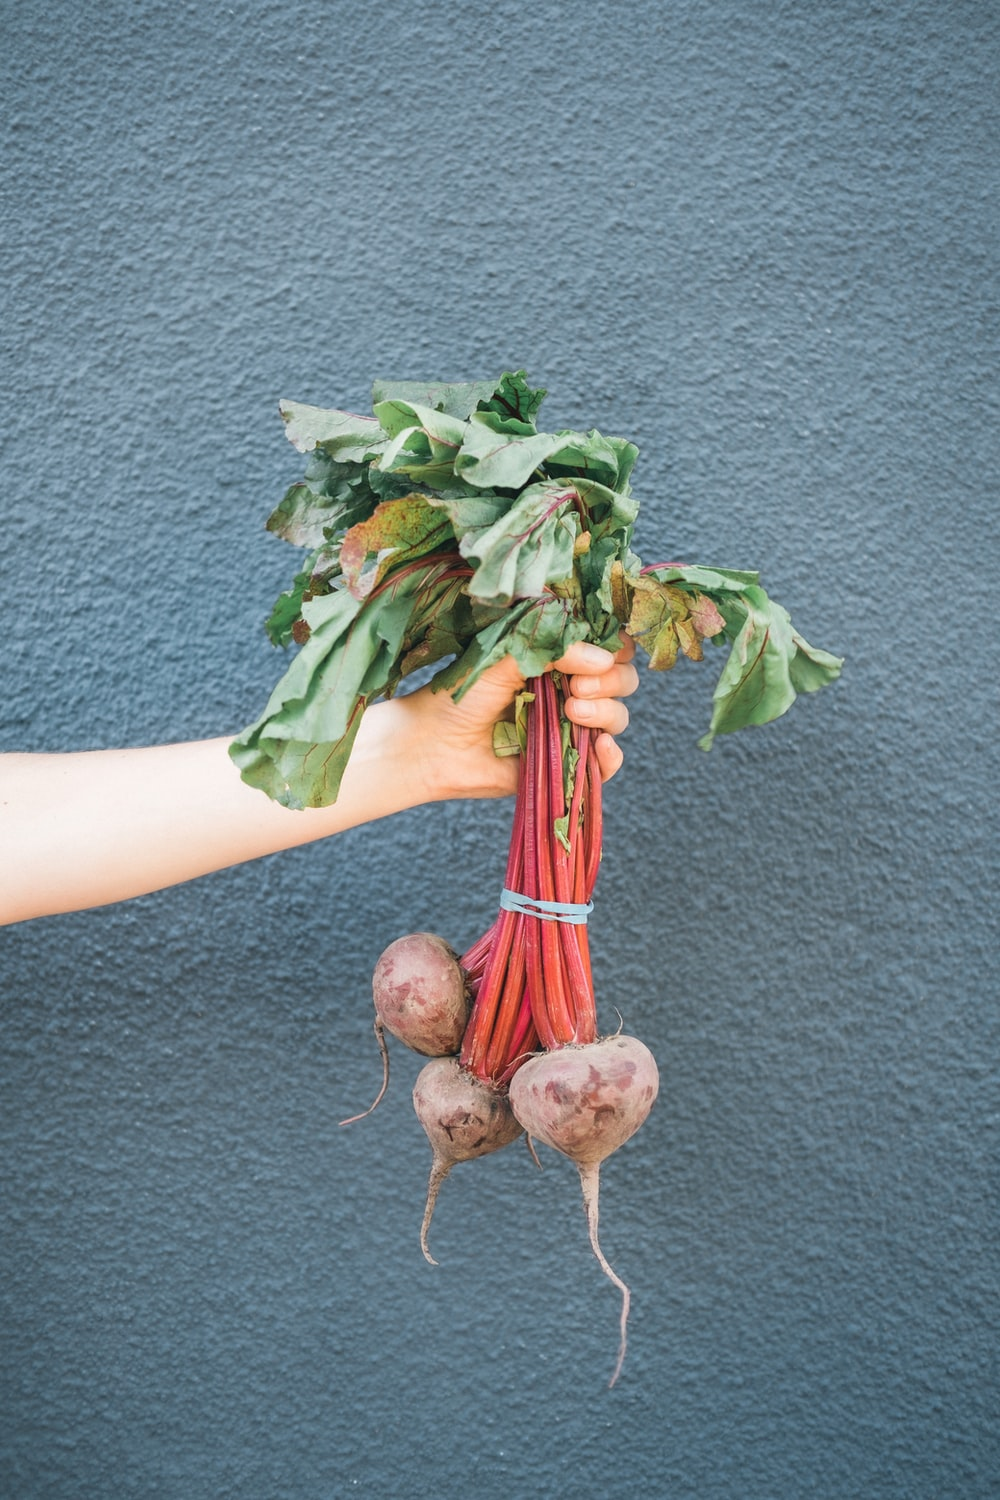 person holding green and brown vegetable